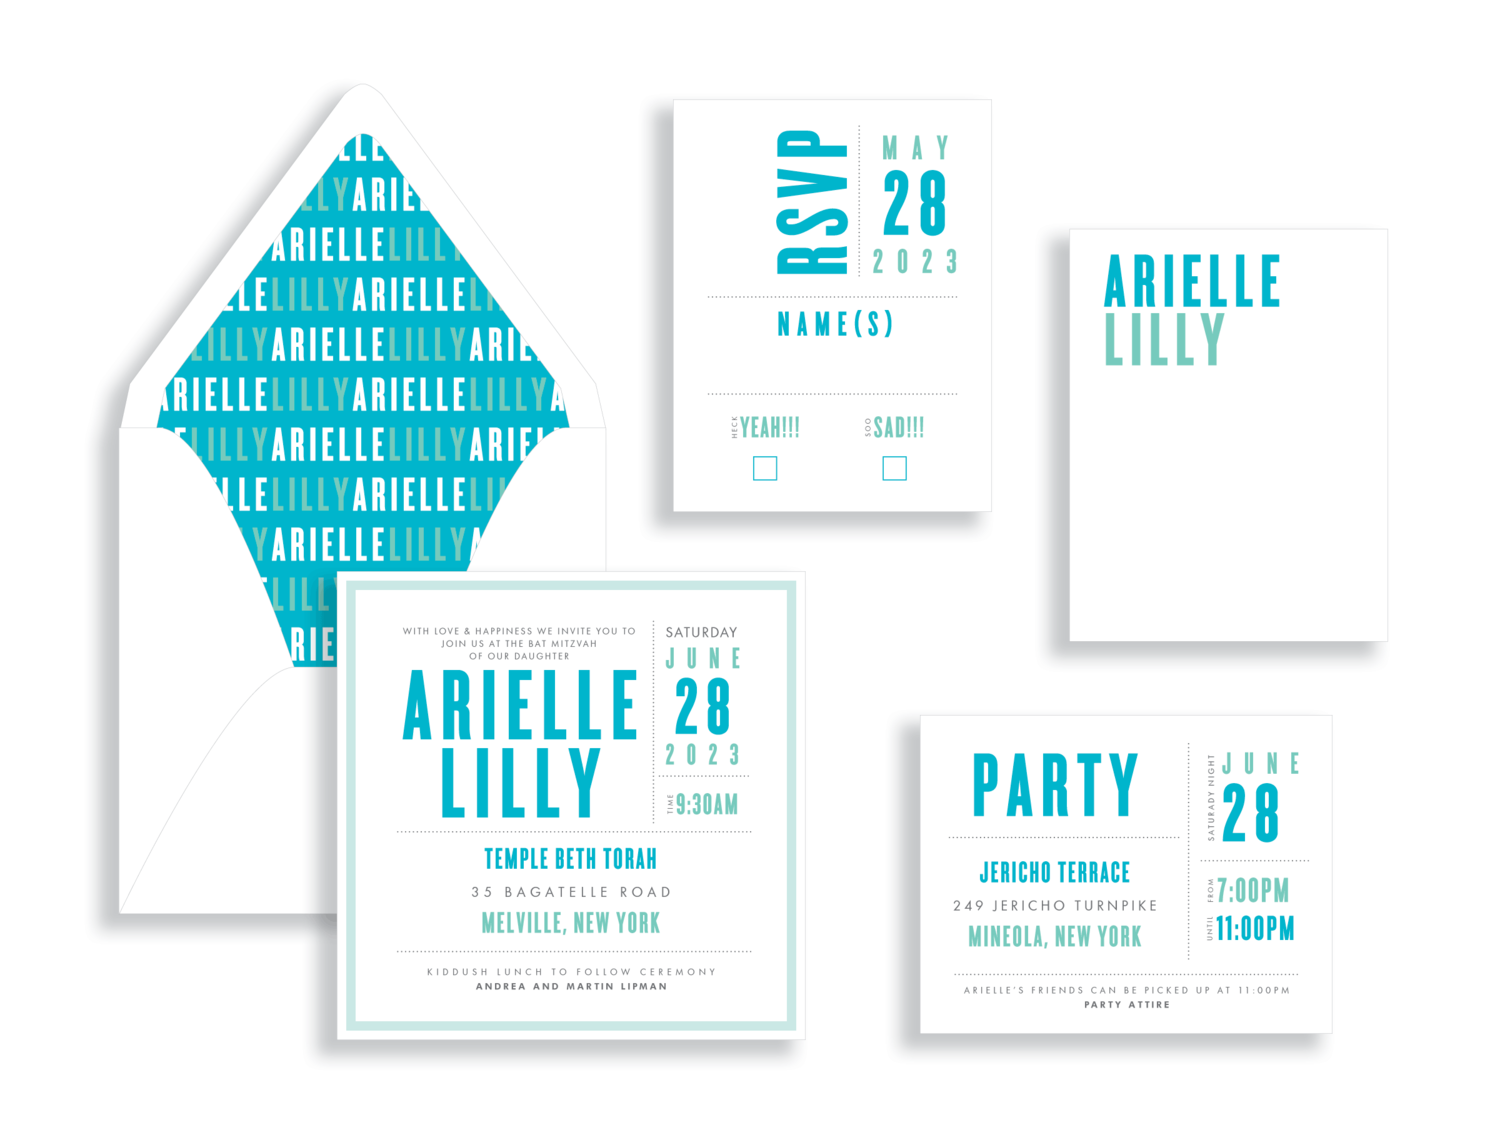 Arielle turquoise bat mitzvah invitation in Fairfax Virginia from Staccato with personalized service, great selection!